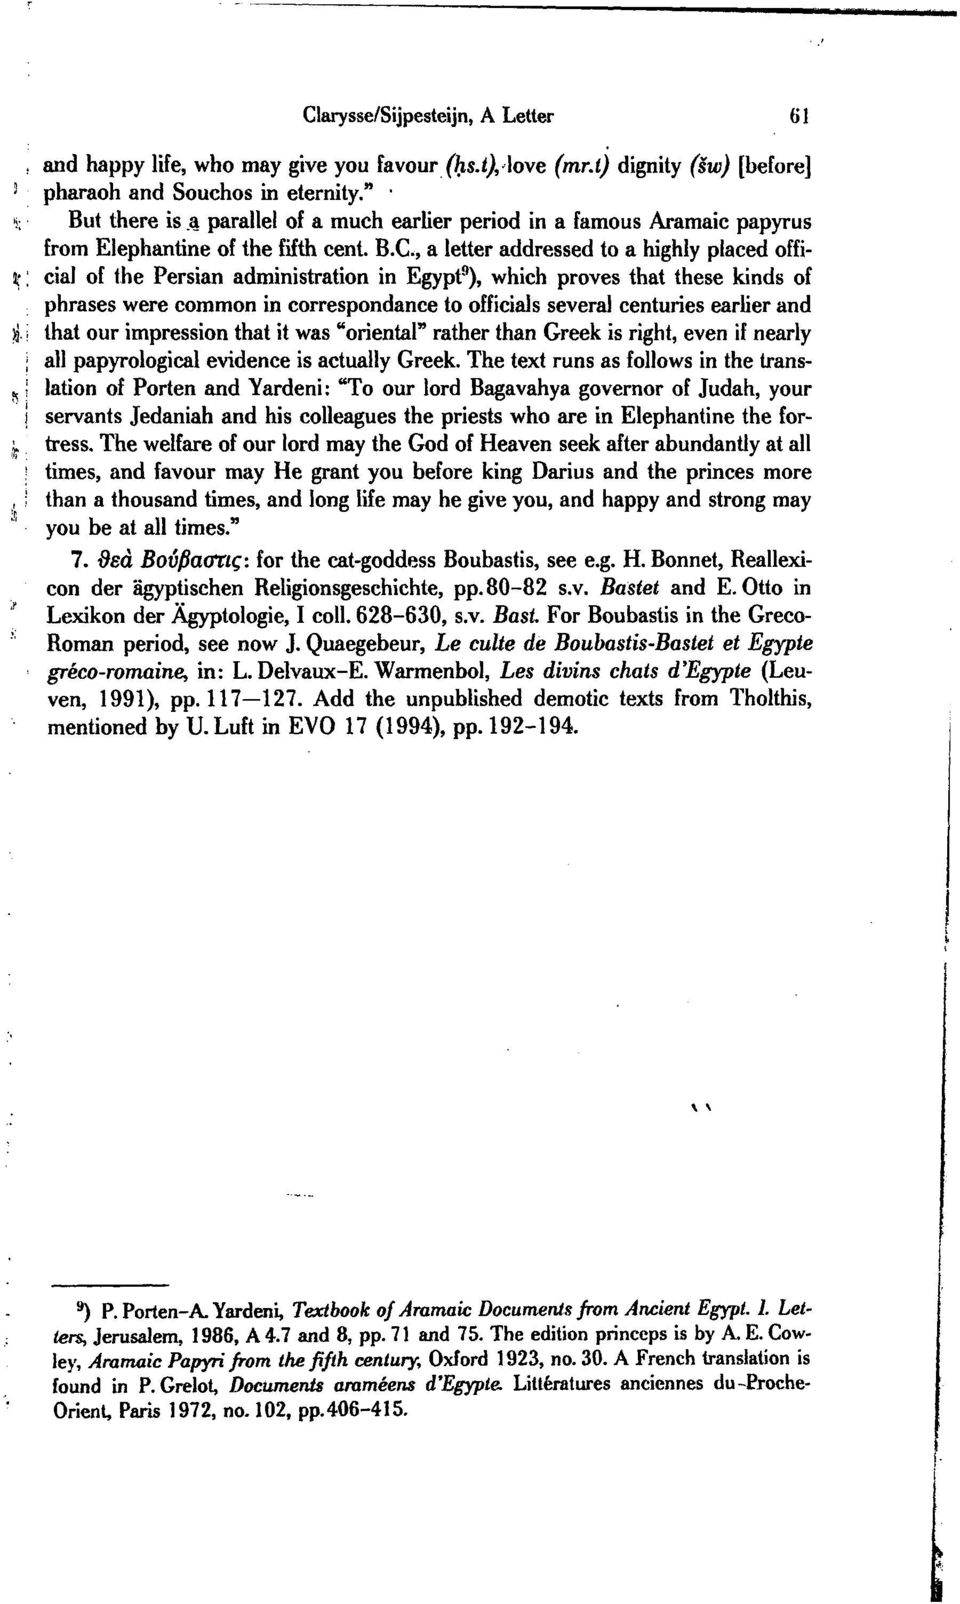 , a letter addressed to a highly placed official of the Persian administration in Egypt 9 ), which proves that these kinds of phrases were common in correspondance to officials several centuries